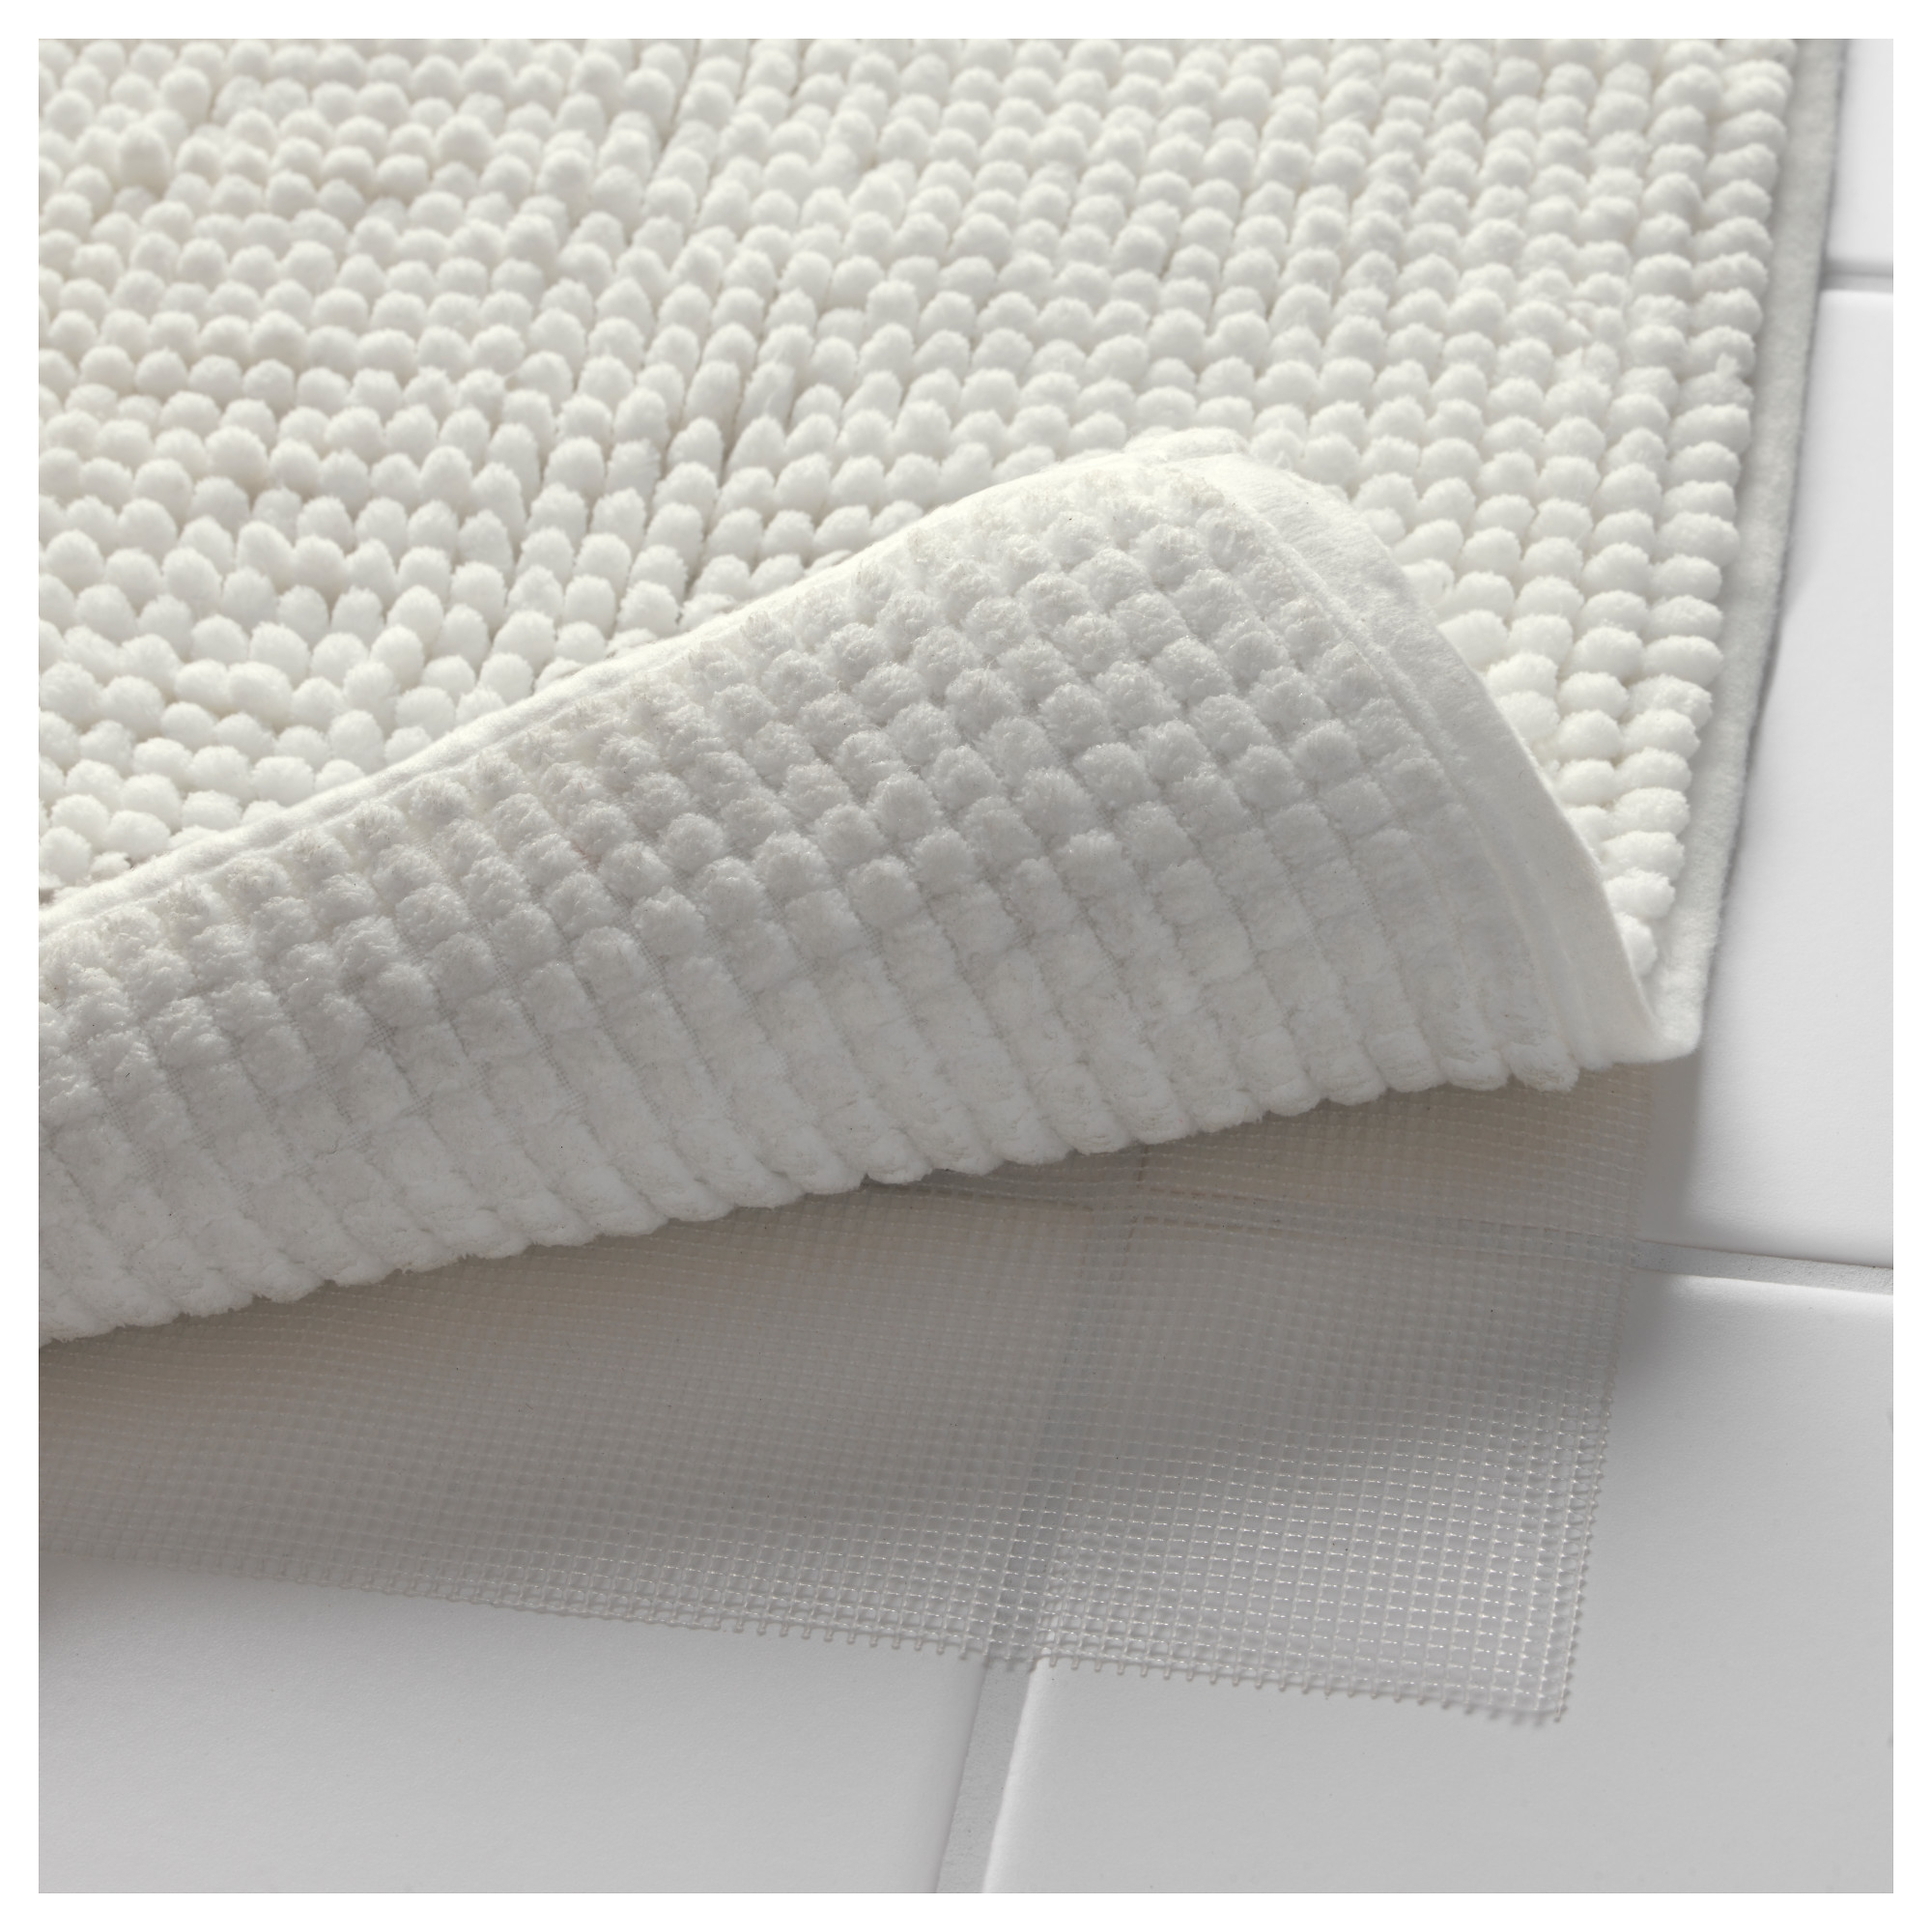 Large Oval Bath Mats